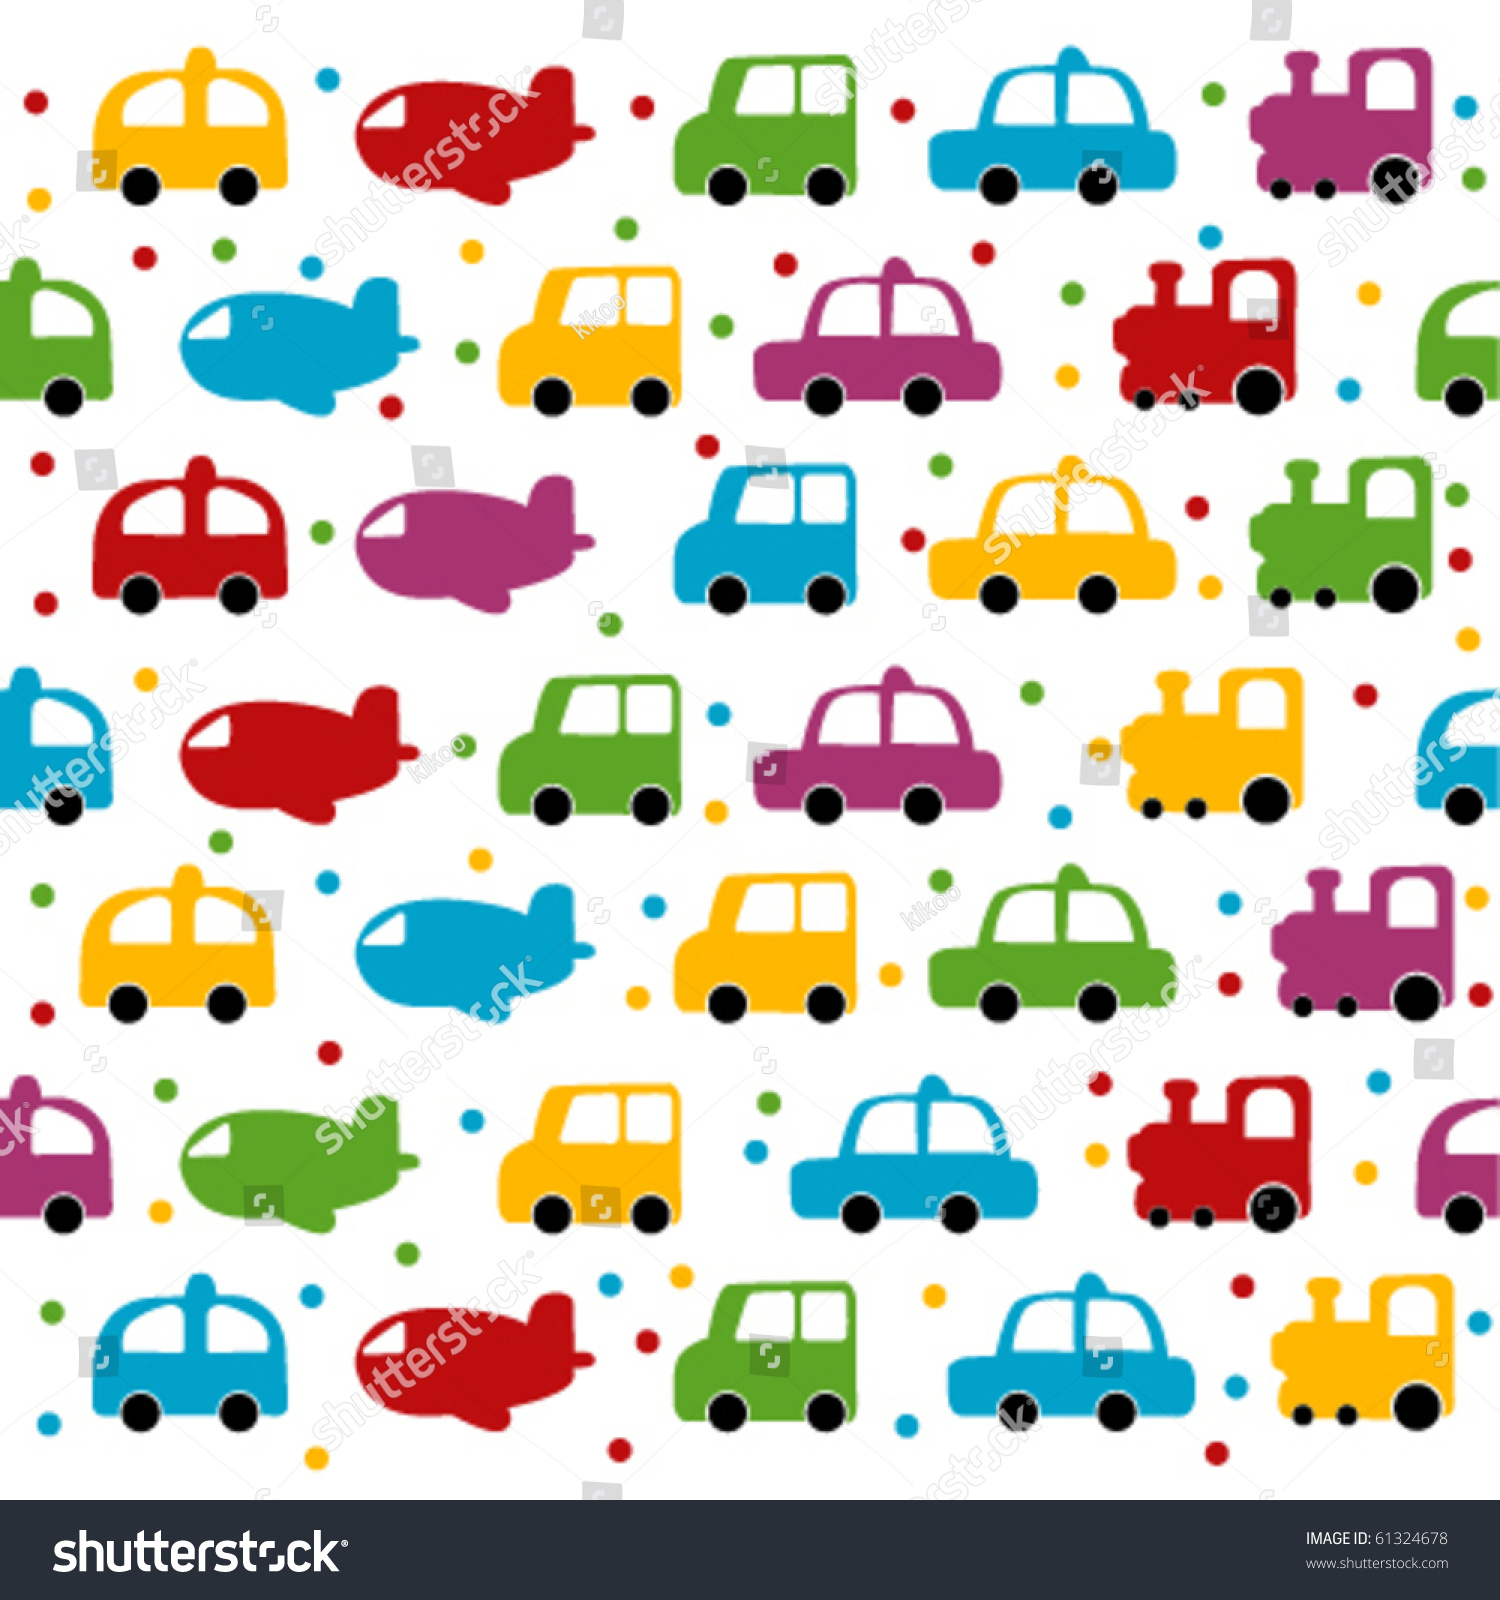 Boy Toys Background : Seamless toy car plane background baby stock vector